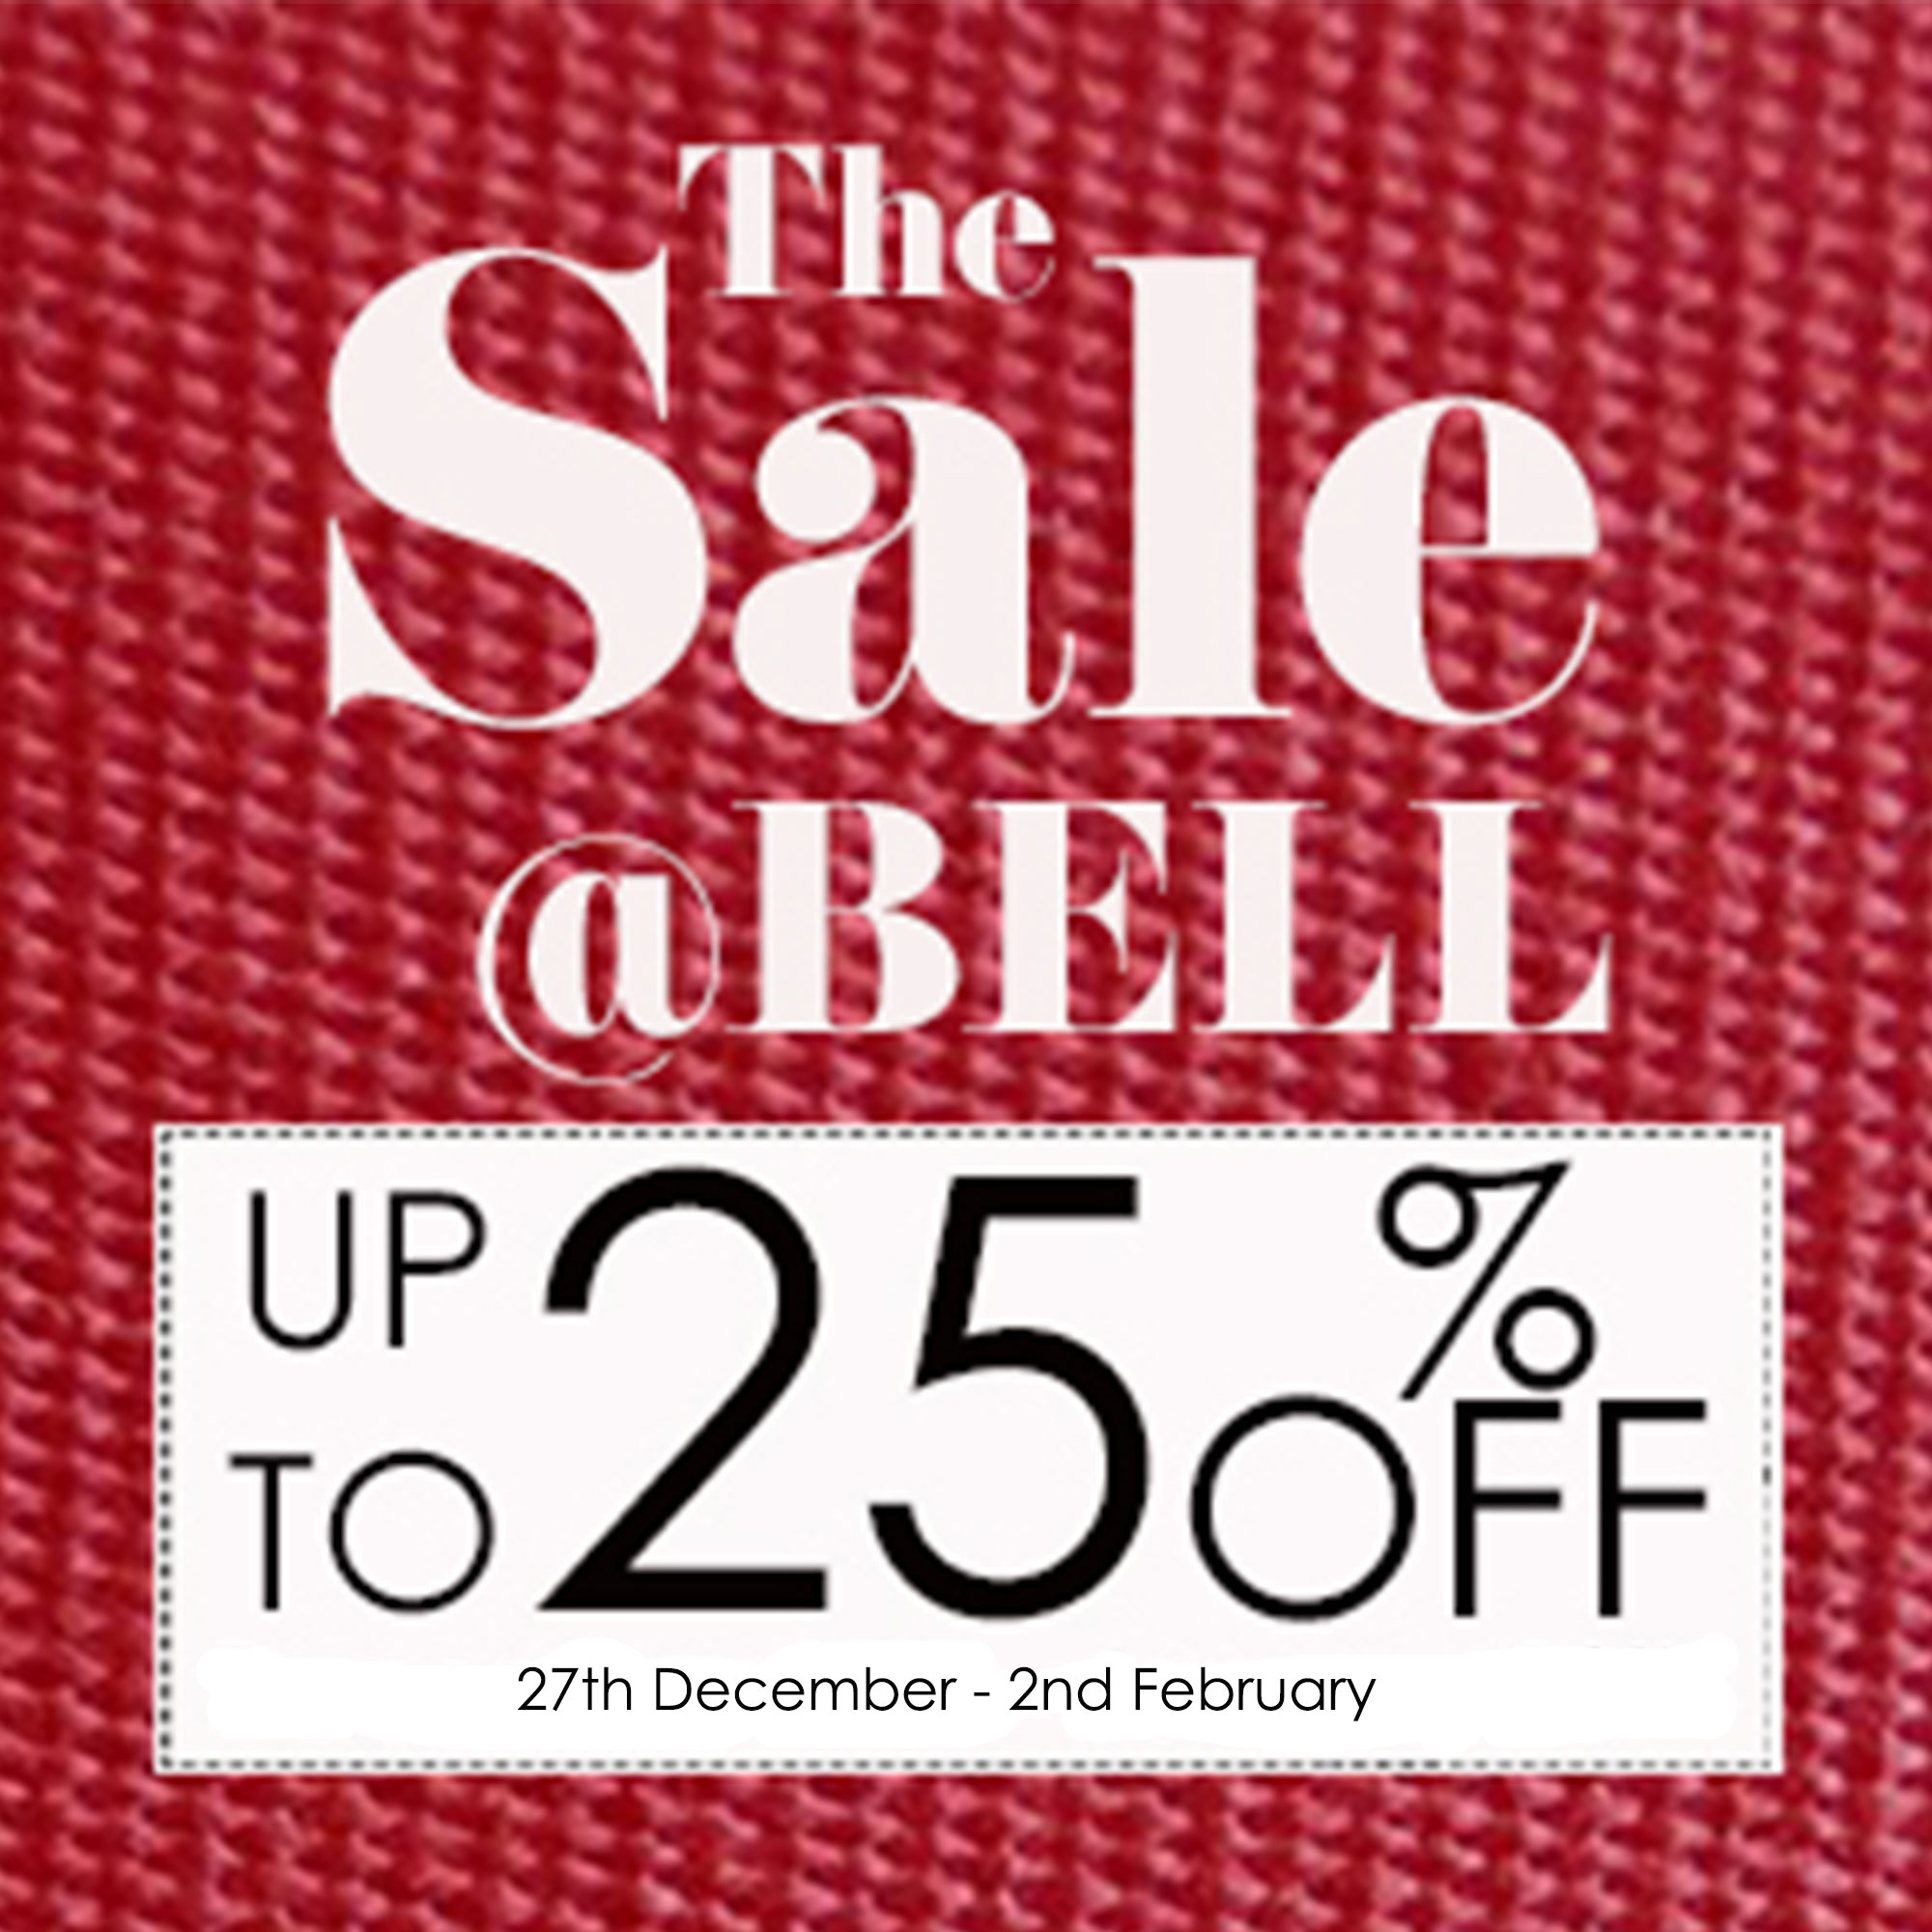 Bell, Northampton, January Sale, 2019, Kitchens, Bathrooms, Fires, Stoves, Tiles, BBQ's, Barbecues, Flooring, Pizza Ovens